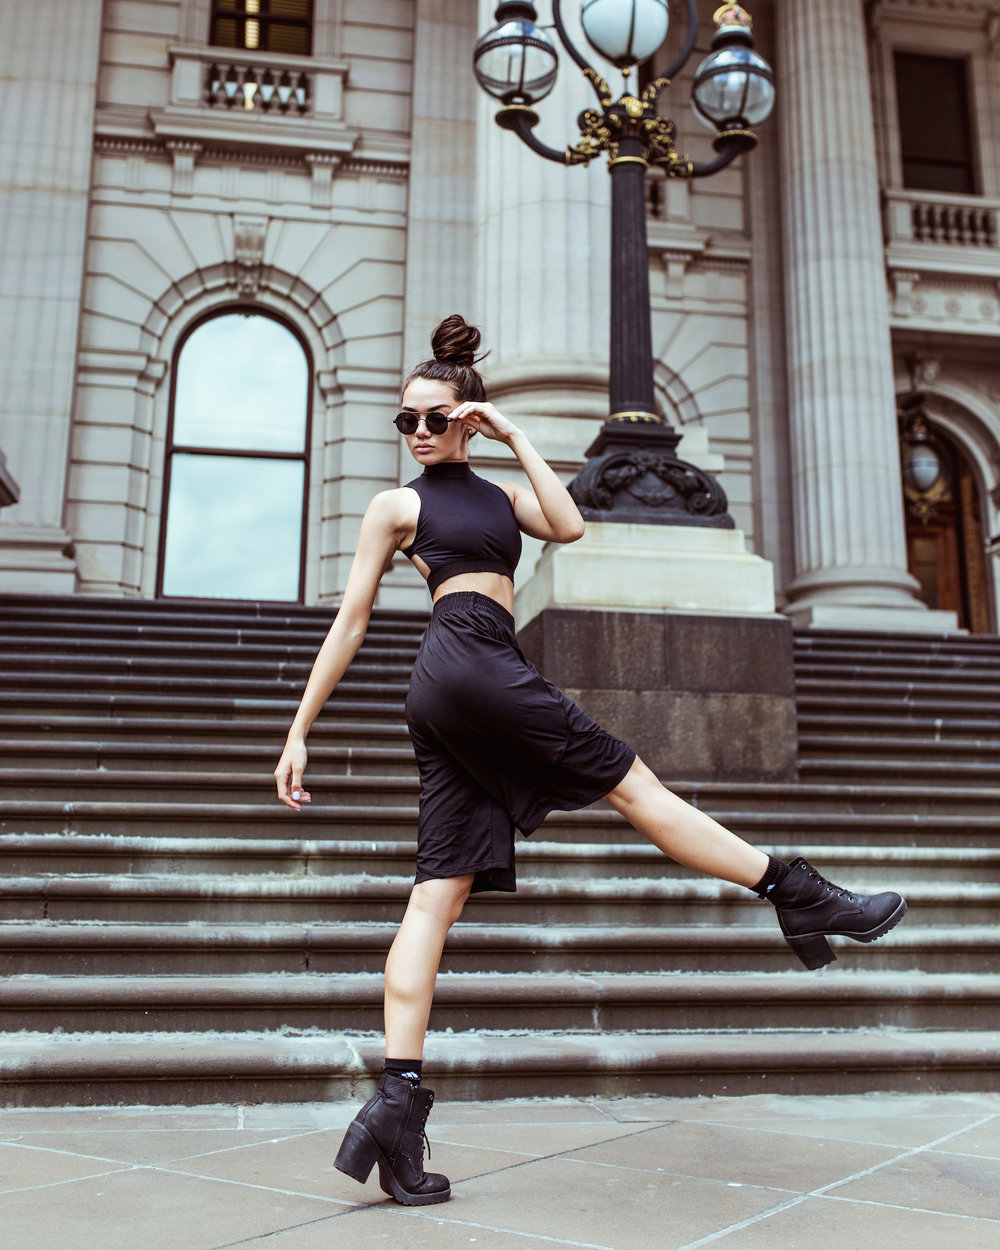 Portia wears: Energetiks  Urban Shorts  and  Ivy Crop  in black.